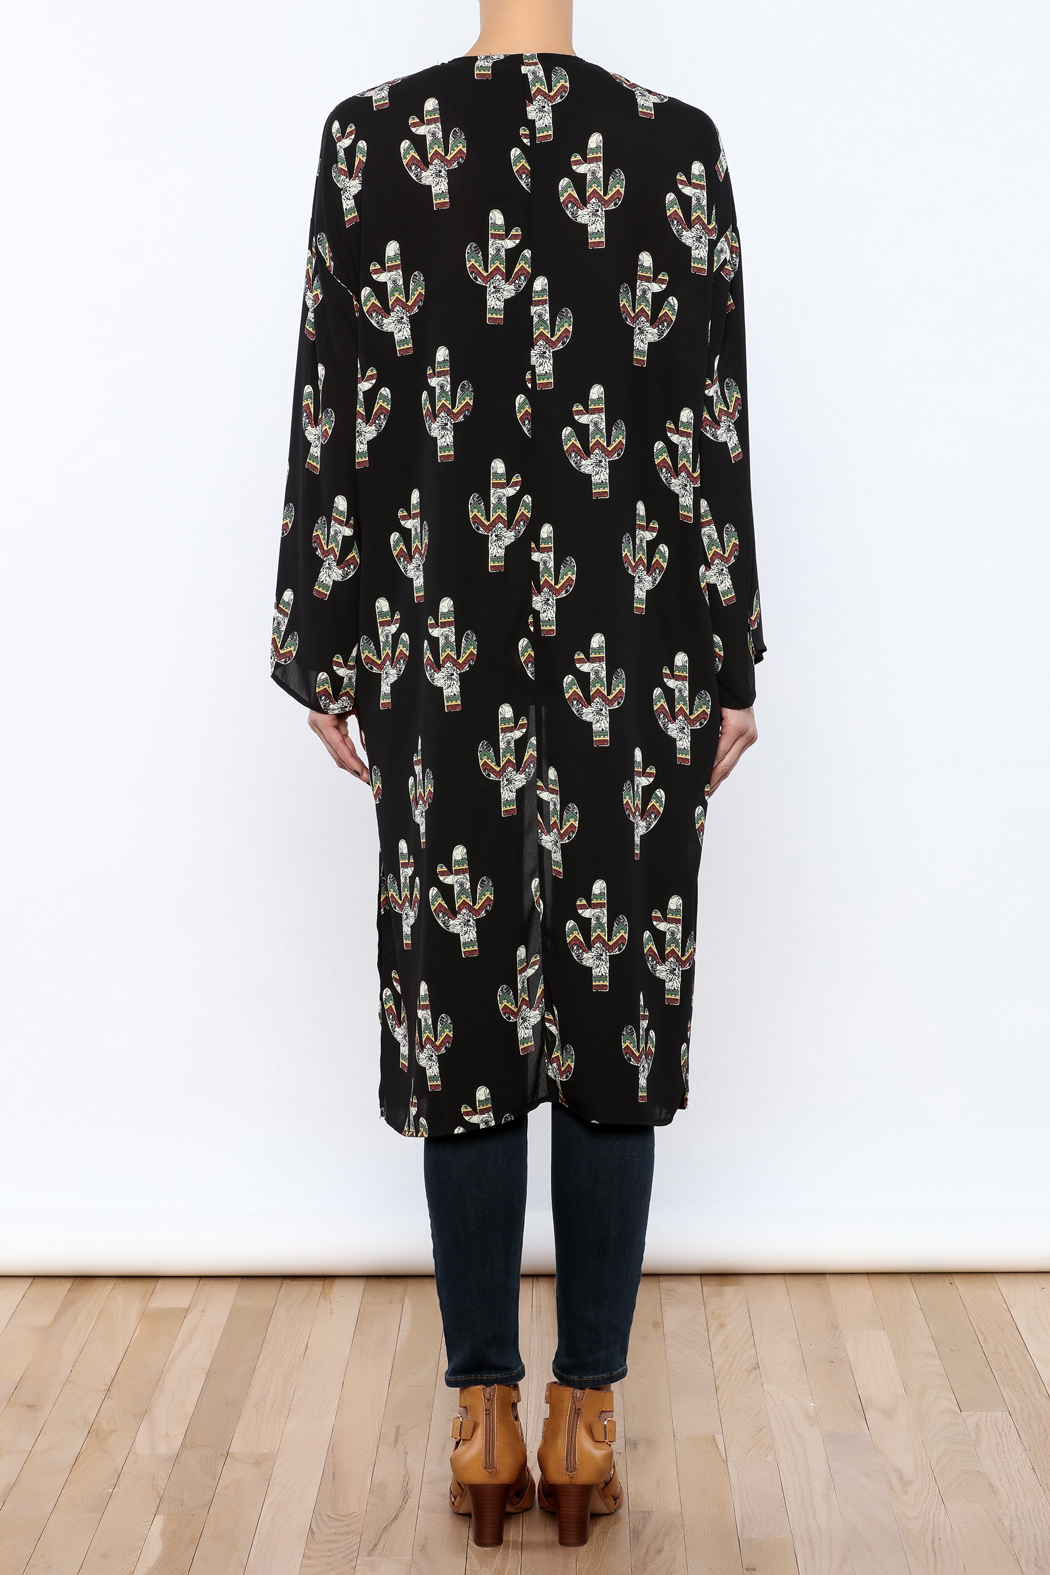 Peach Love California Cactus Print Kimono From South